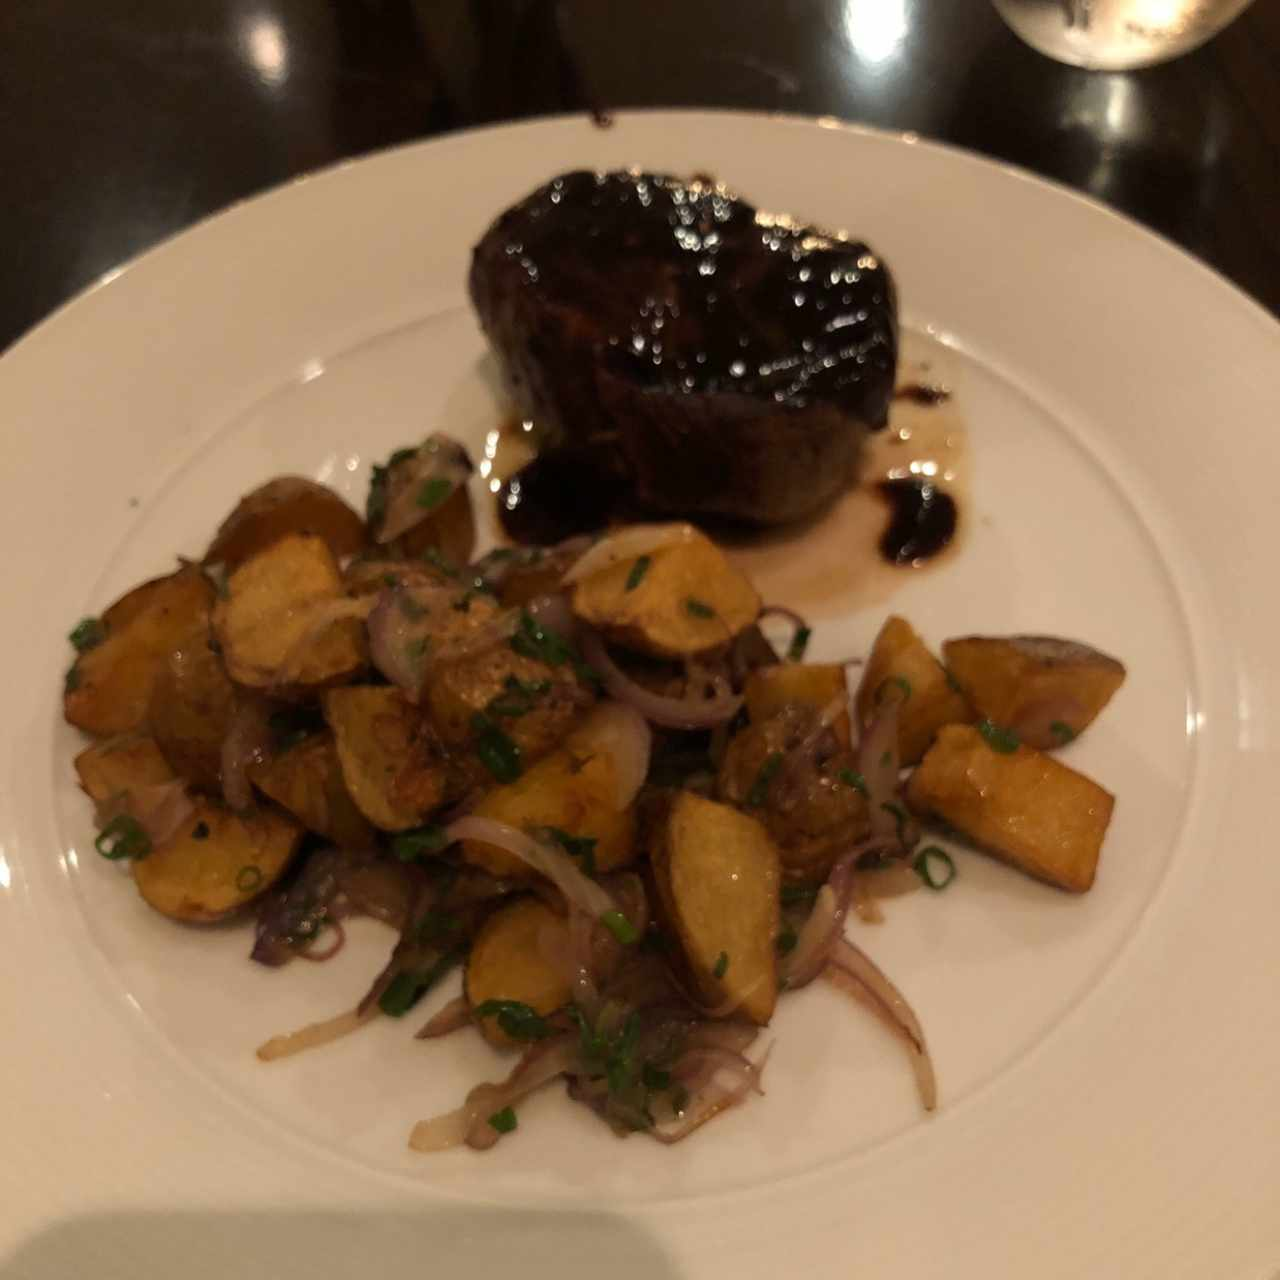 FILETE DE RES / BLACK ANGUS FILET MIGNON